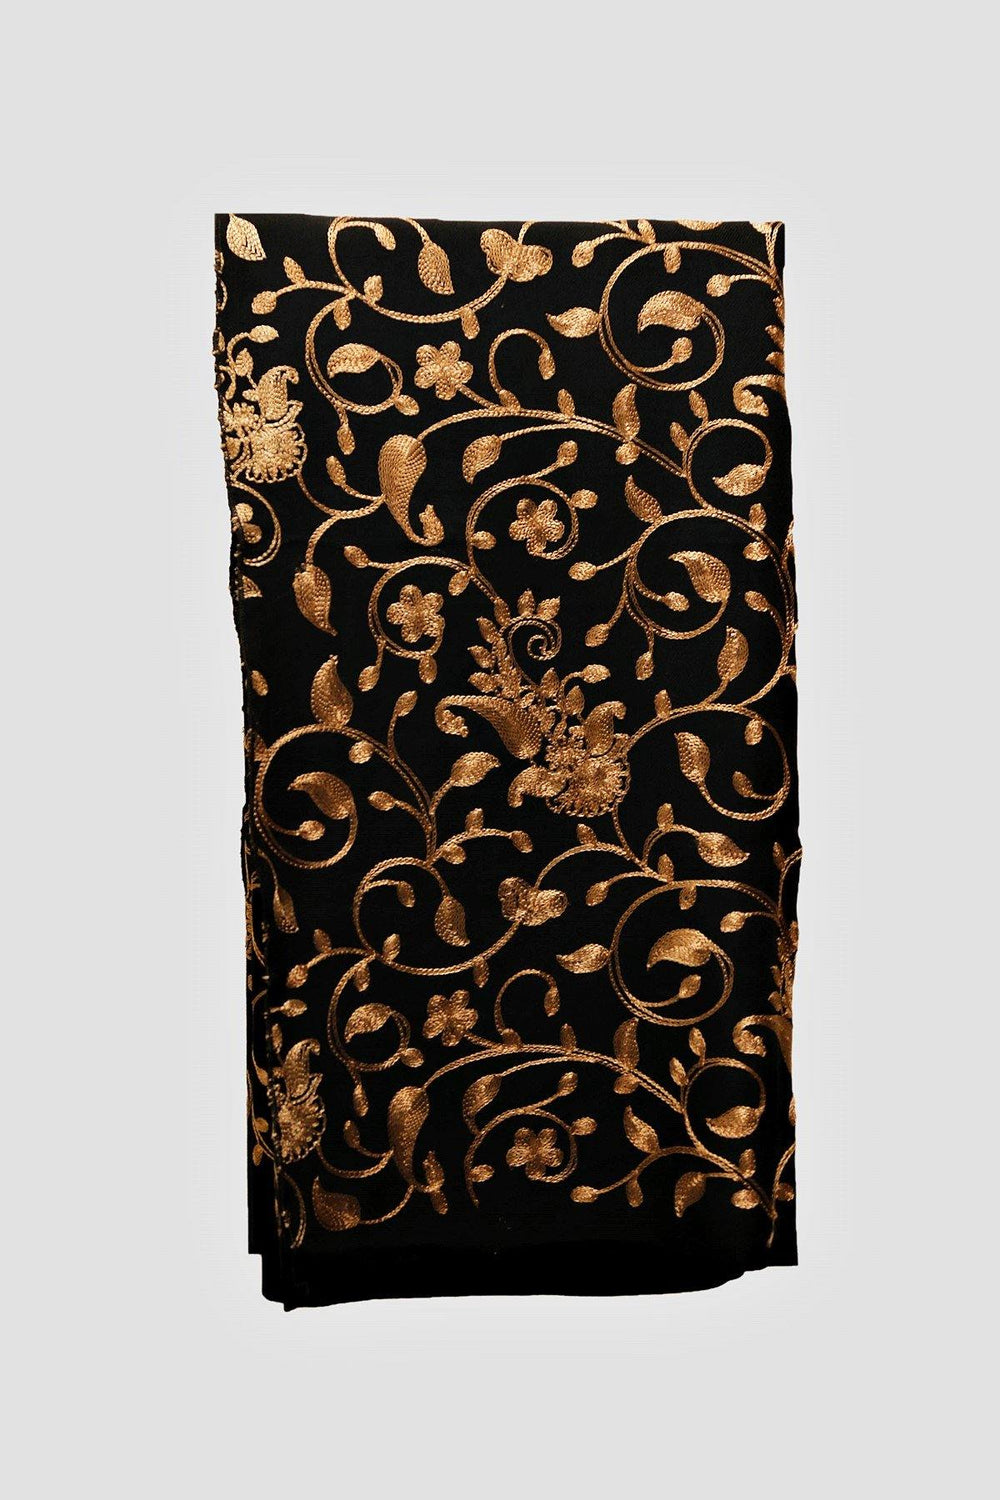 Golden Floral Leaves Embroidered Shawl - Brandsea UK